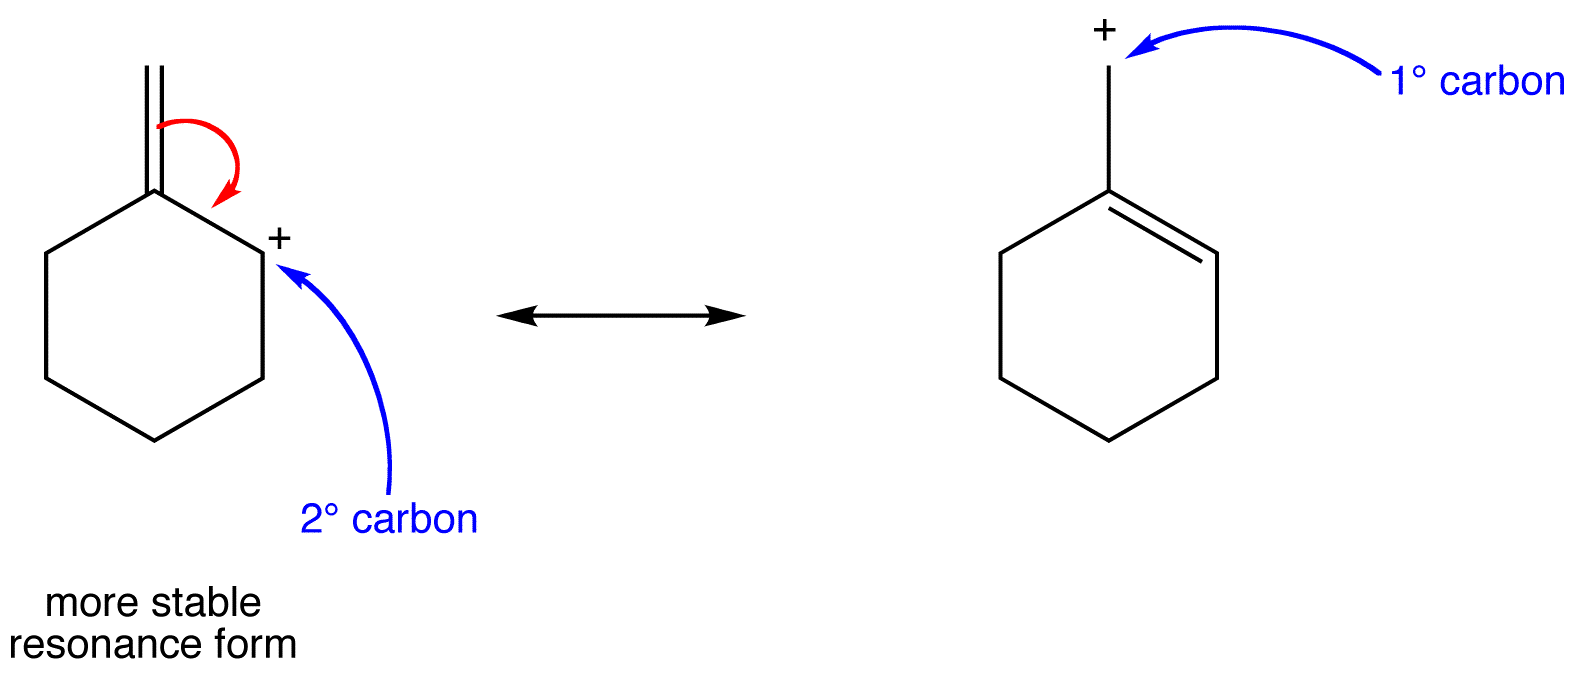 Secondary Allylic Carbocation Ochempal